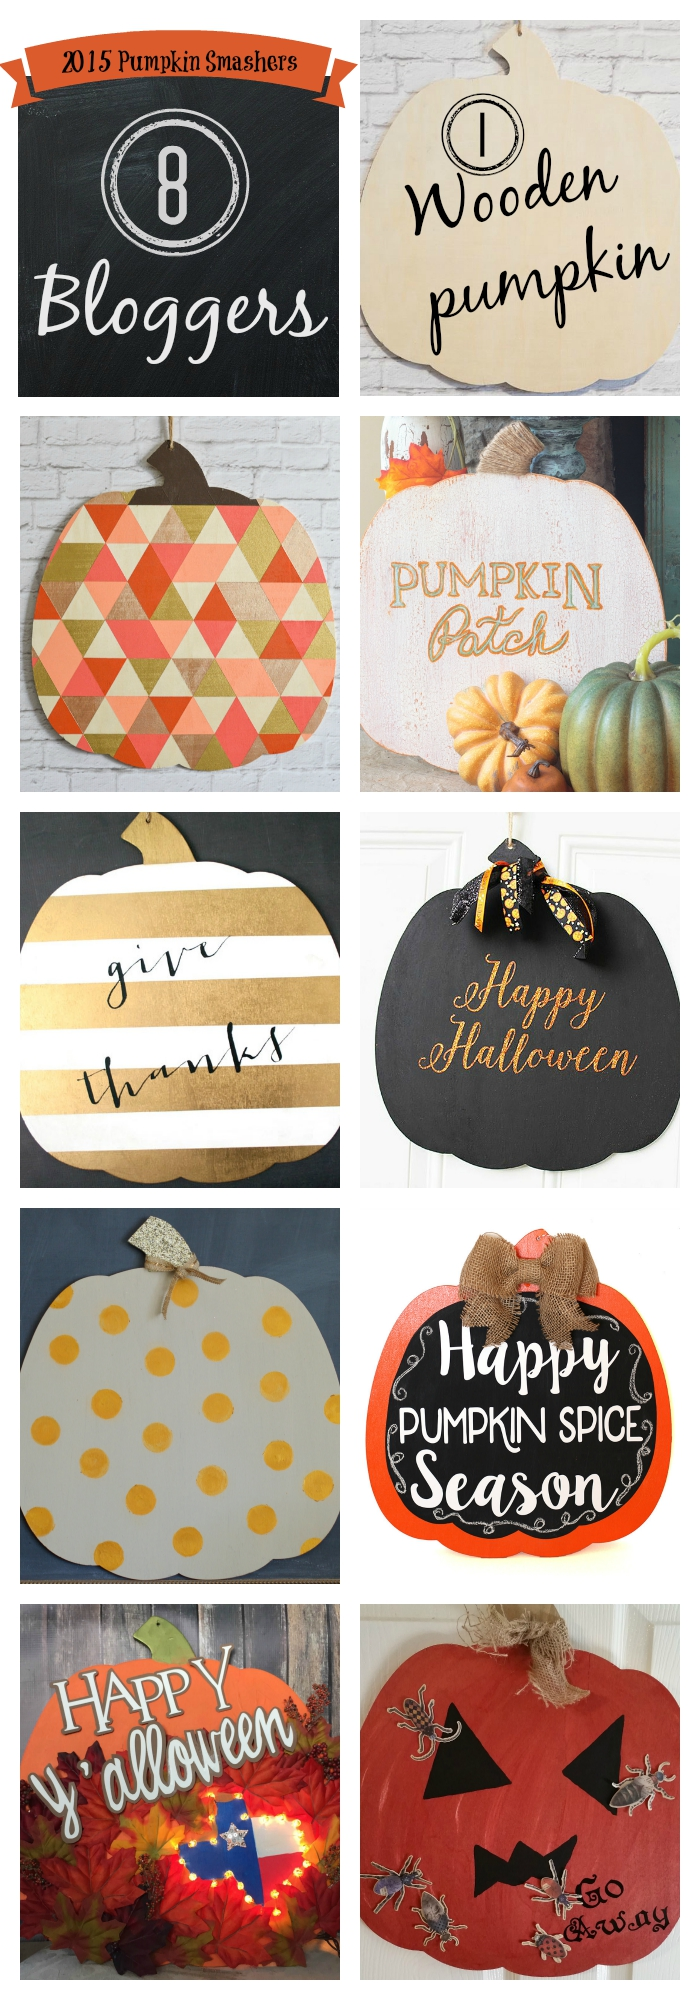 2015 Pumpkin Smashers Blog Hop. How to decorate a plain wooden pumpkin for Halloween. See how easy it is to use Fusion Mineral Paint and DecoArt Metallic Lustre. Also has a blog hop featuring 7 other bloggers decorating the same pumpkin. The possibilities are endless!